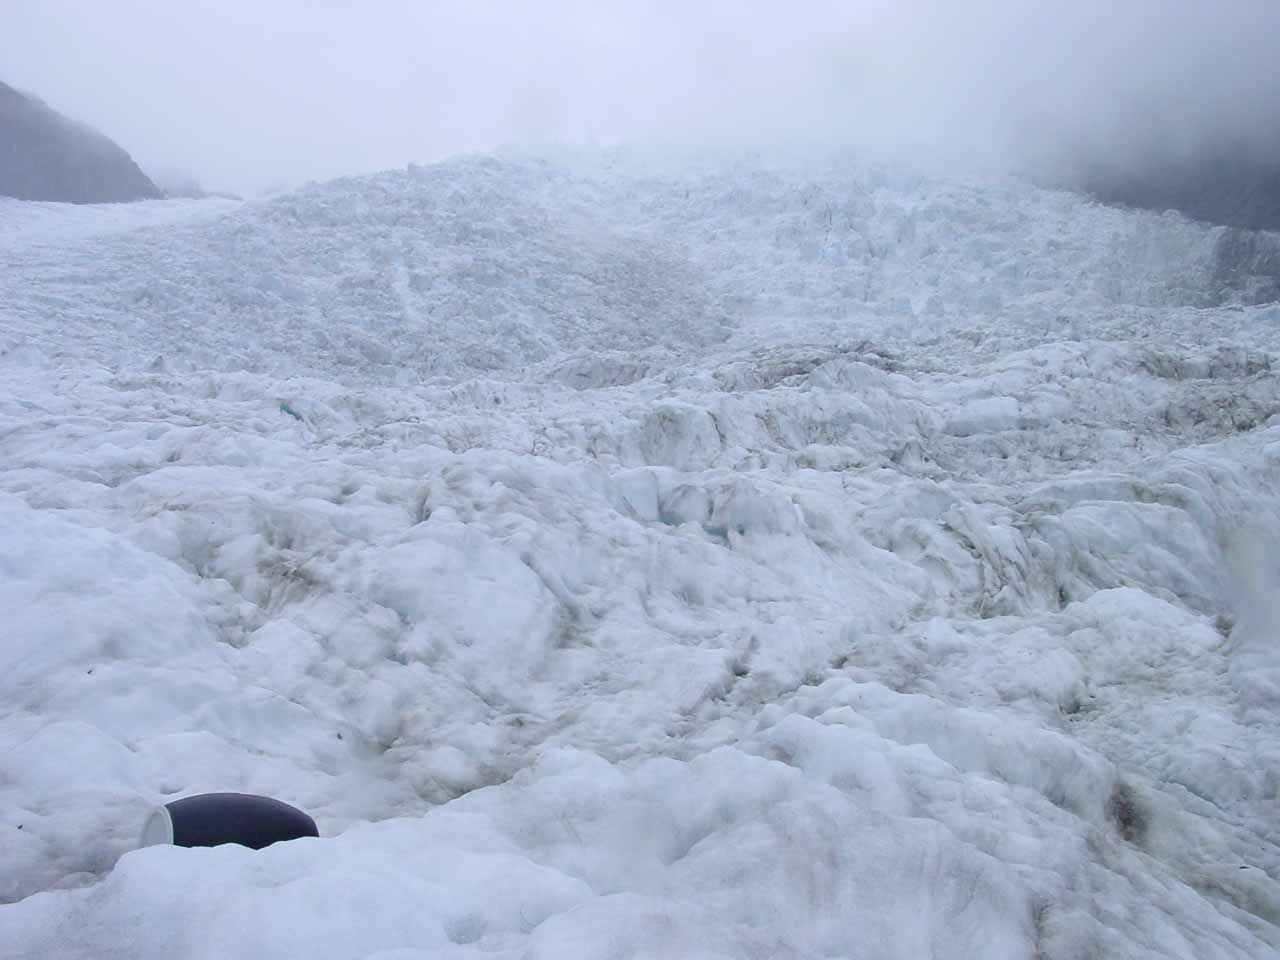 Looking up towards the top of the Franz Josef Glacier